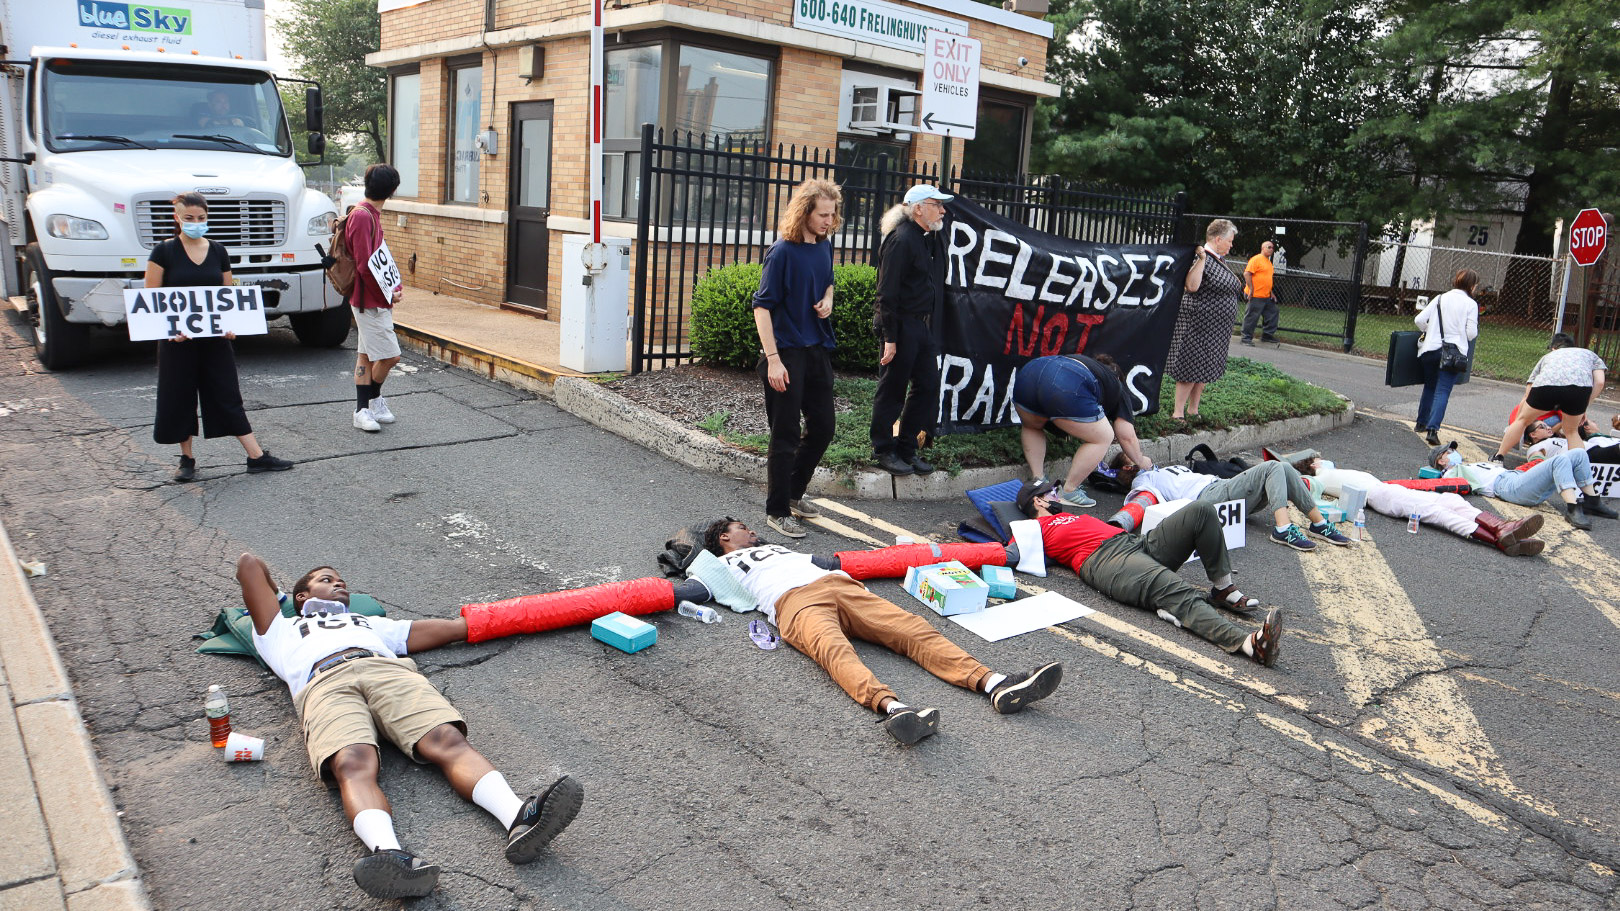 Activists blocked entrances to a DHS Investigations field office in Newark to protest the transfer and deportations of detainees.